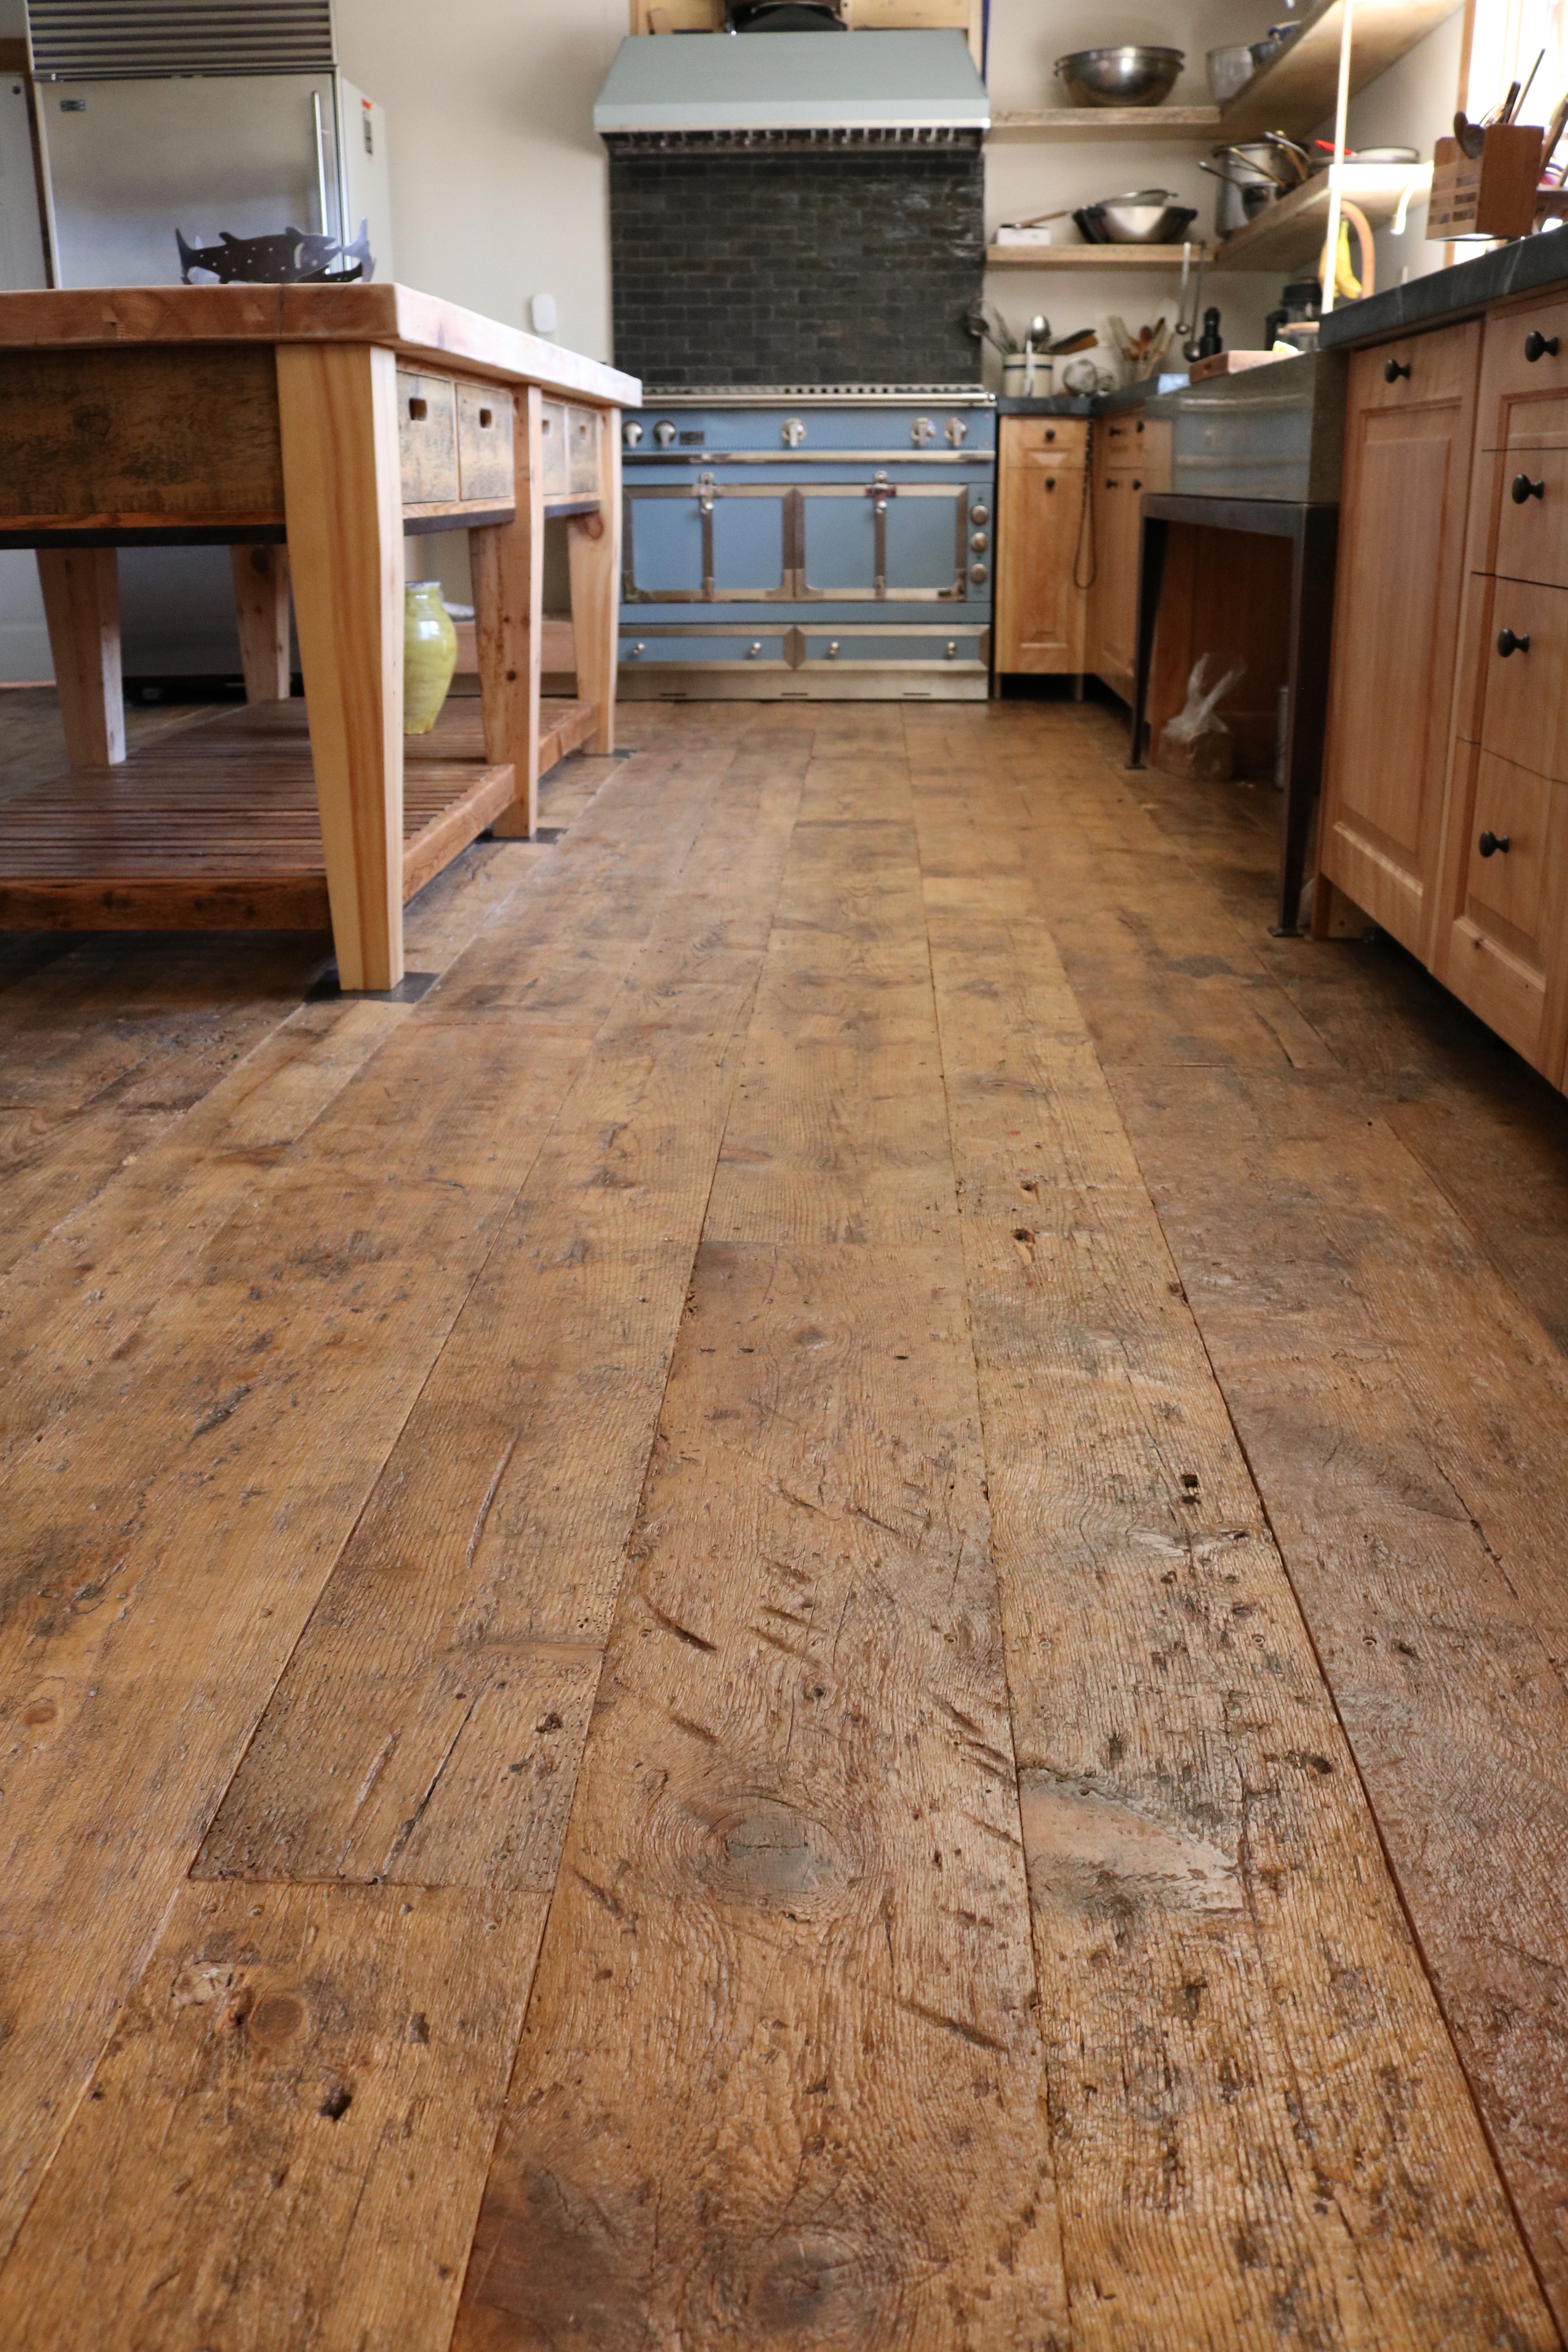 Residential kitchen floor made from reclaimed barn board in Yarmouth, Maine